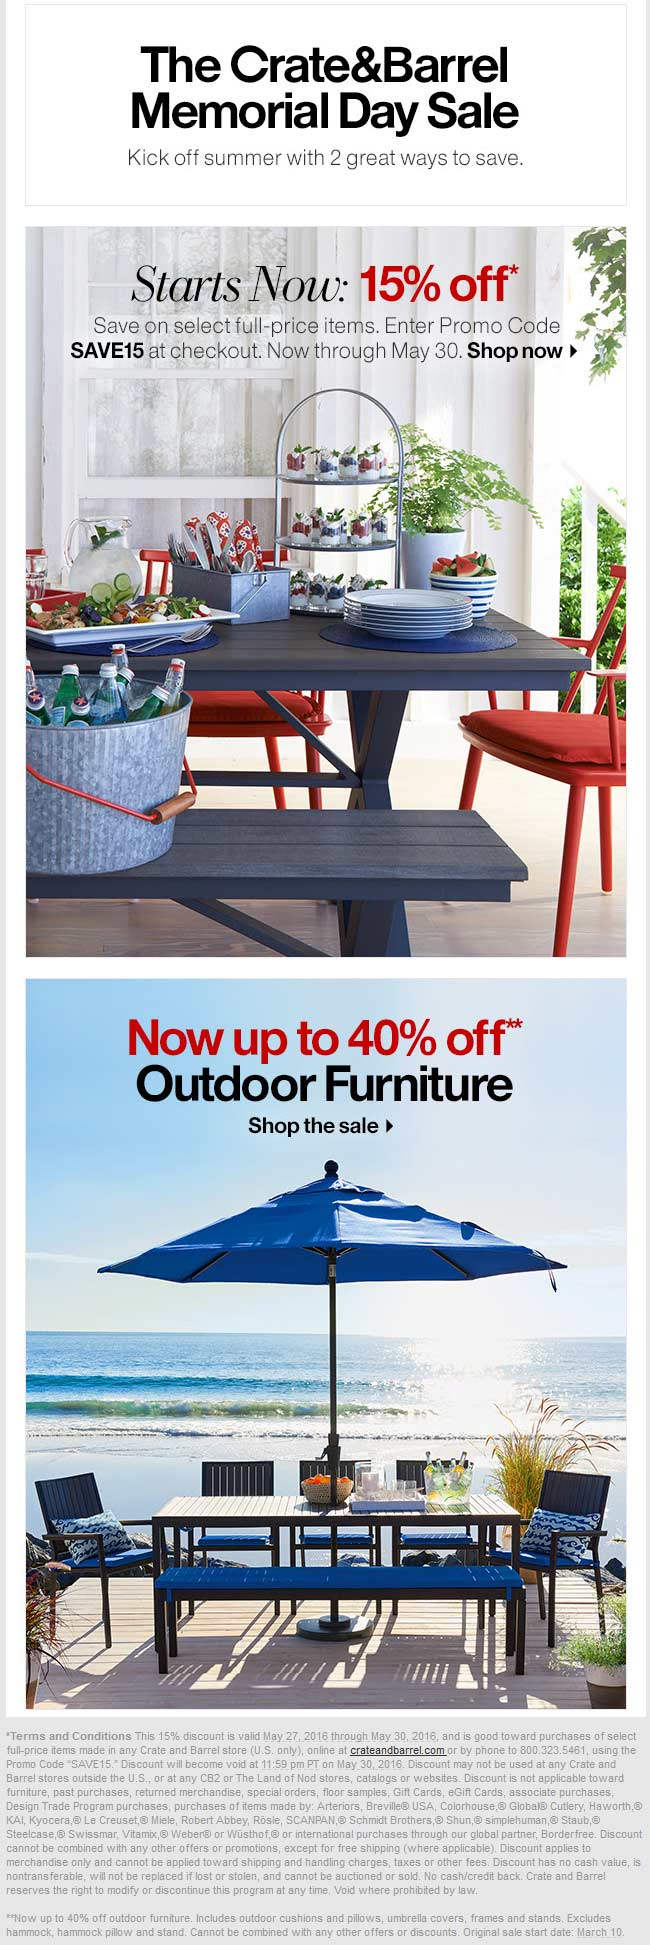 Crate & Barrel Coupon May 2017 15% off at Crate & Barrel, or online via promo code SAVE15